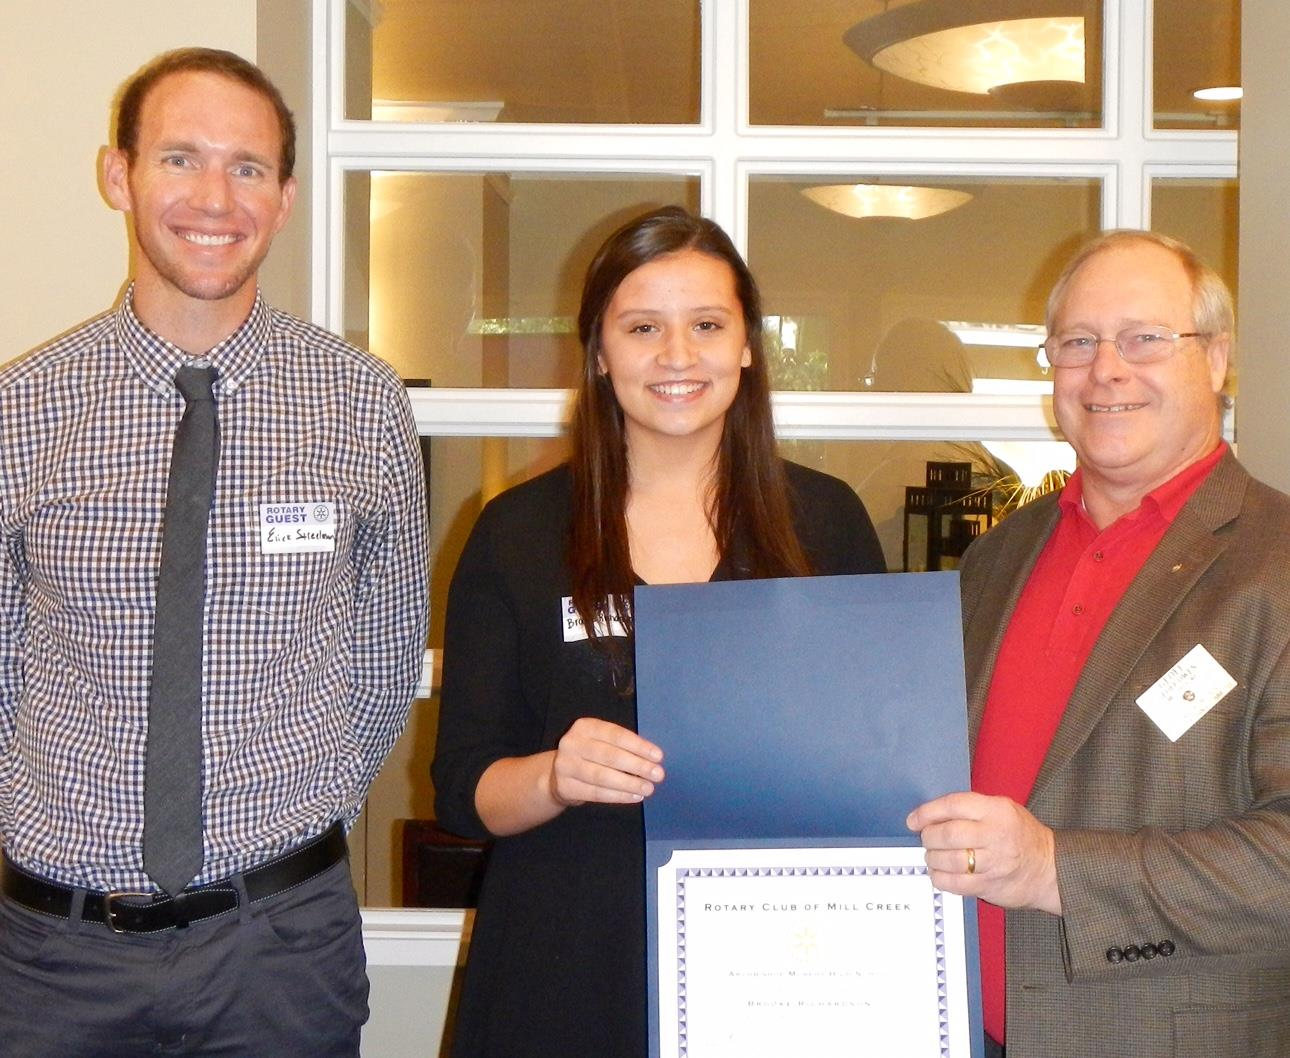 From left, Athletic Director Erick Steelman, Student of the Month Brooke Richardson, and New Generations Chair Geoff Owen.